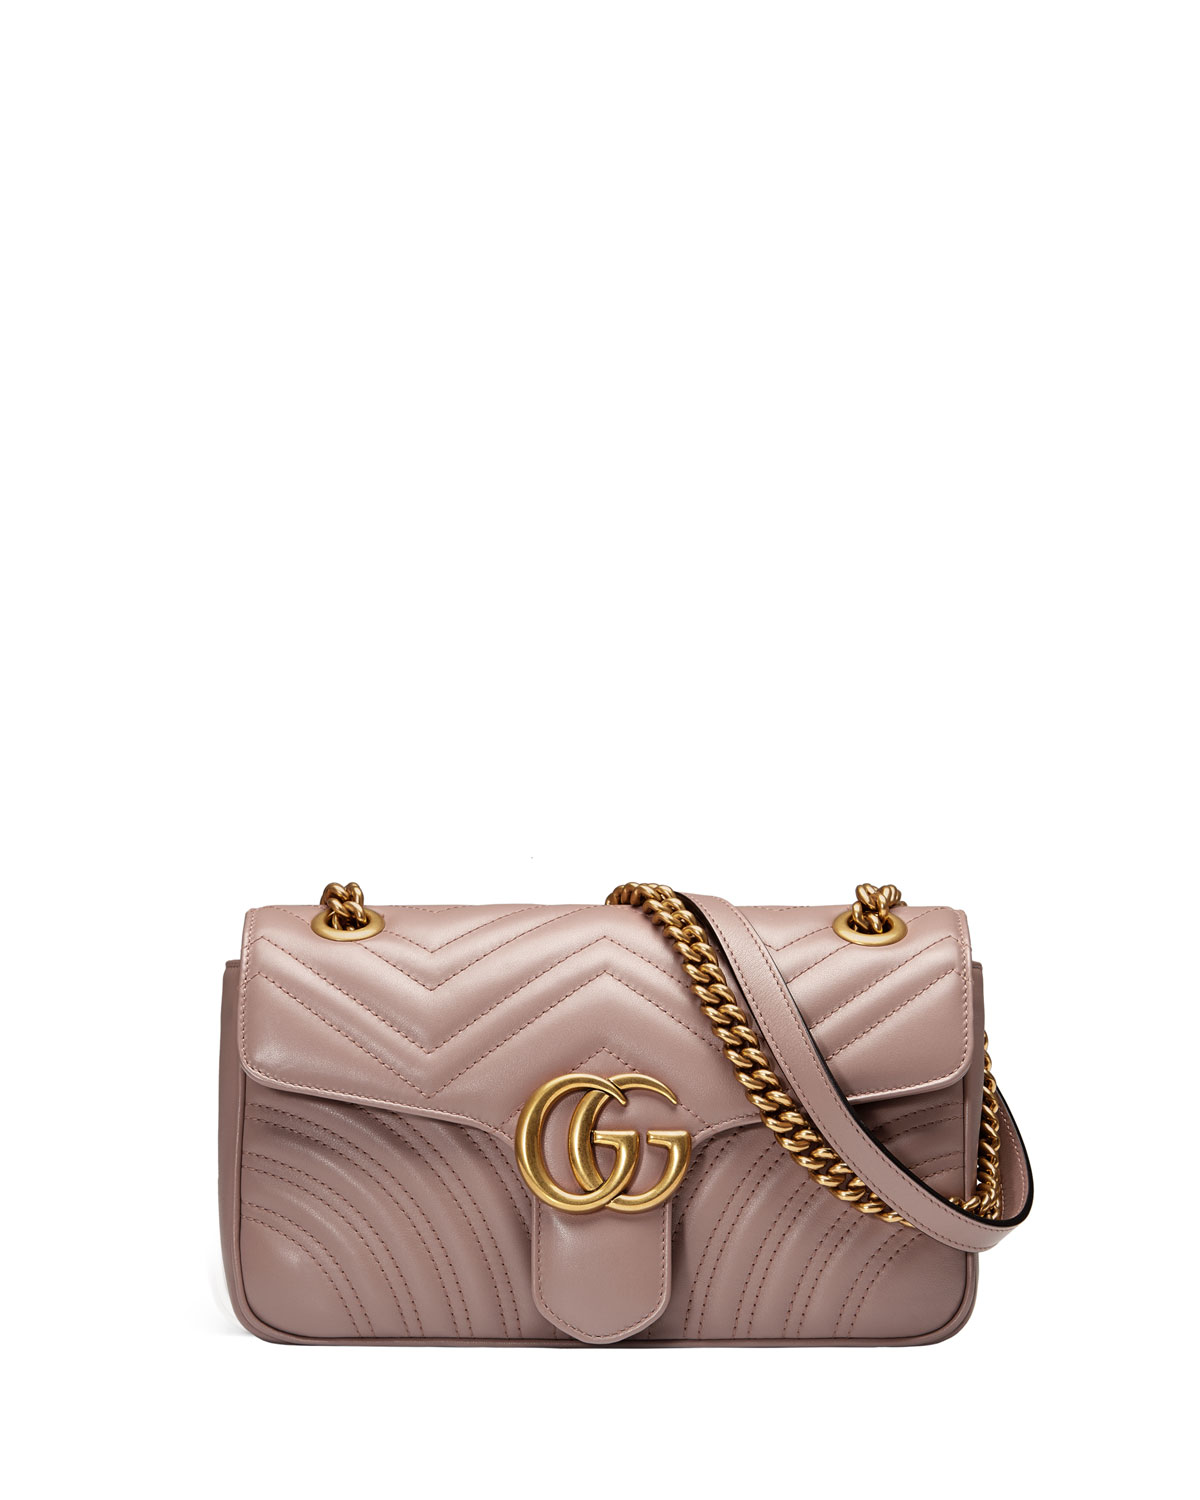 c20e41f35550 Gucci Shoulder Bag | Neiman Marcus